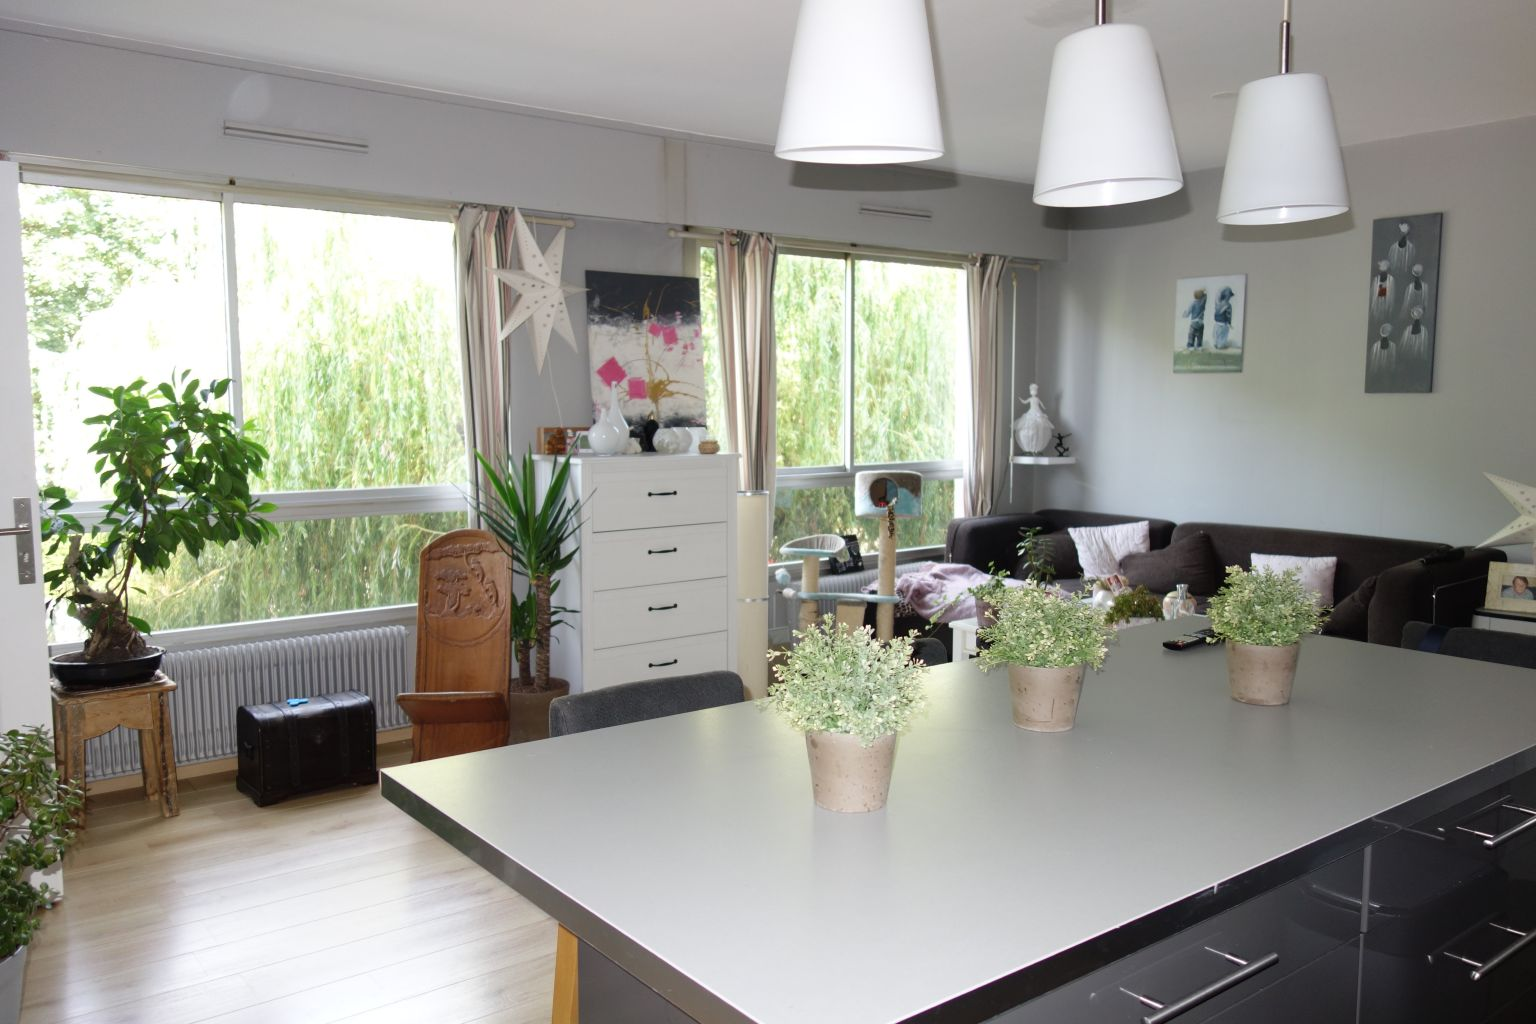 Aim agence immobili re lille vente achat location maison for Agence immobiliere wasquehal